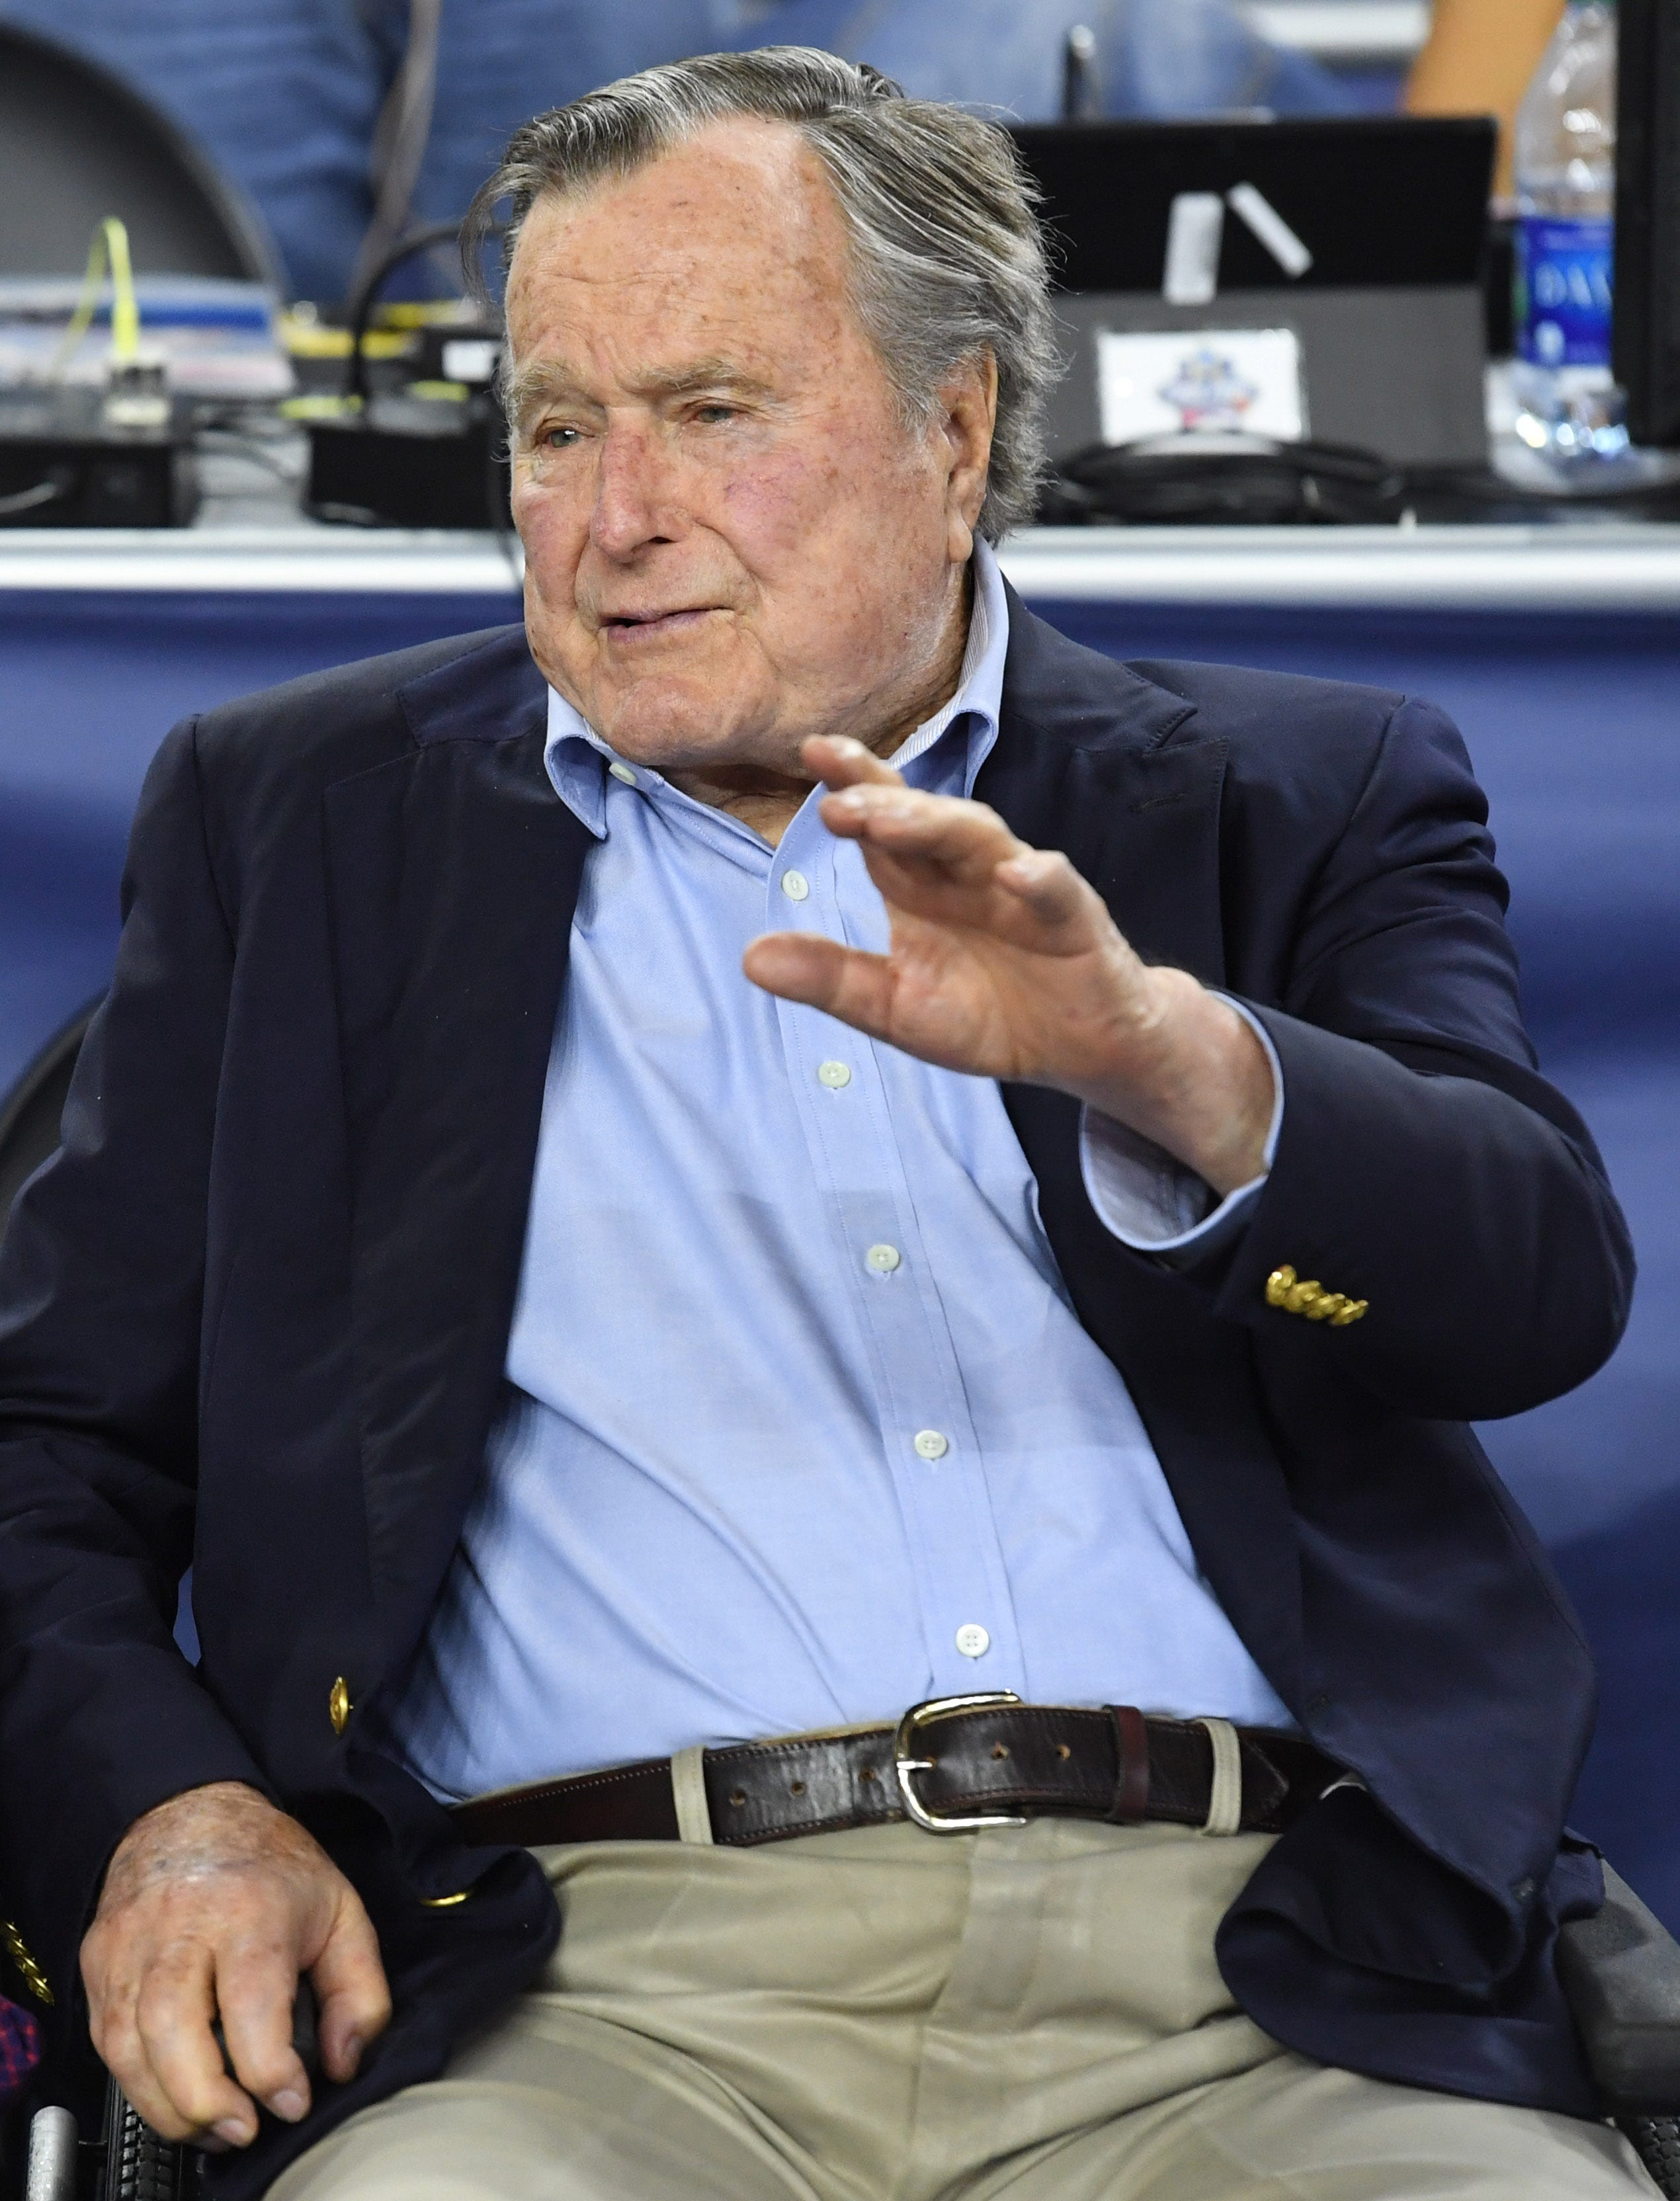 Former president George H. W. Bush on Hurricane Harvey: 'Our hearts are in Houston'